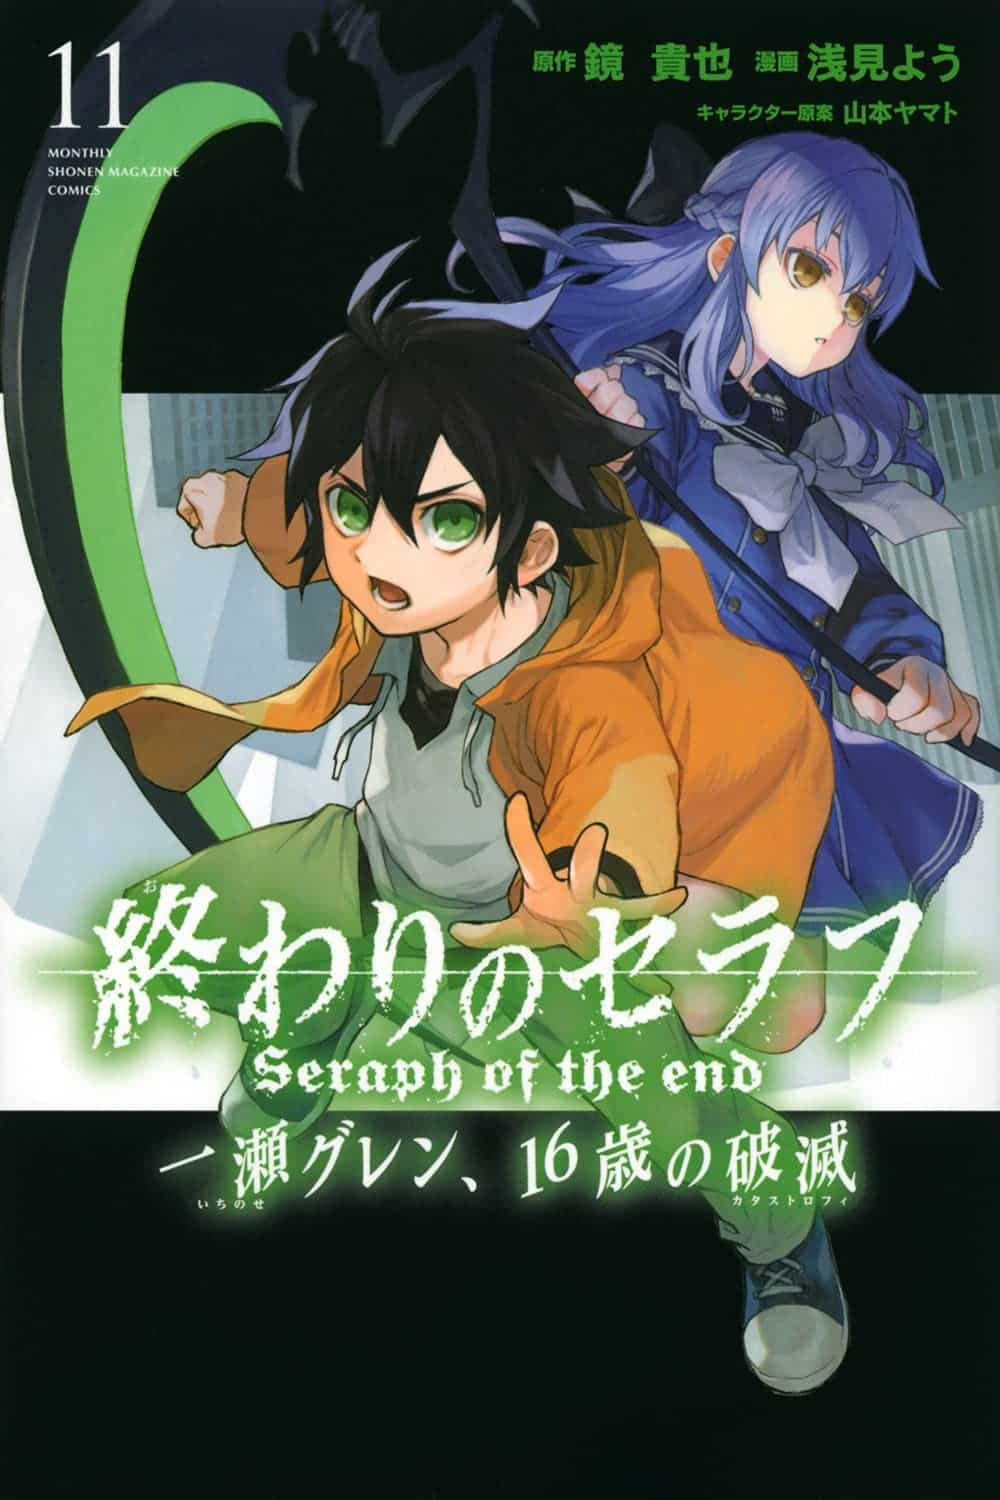 seraph of the end catastrophe 16 vol 11